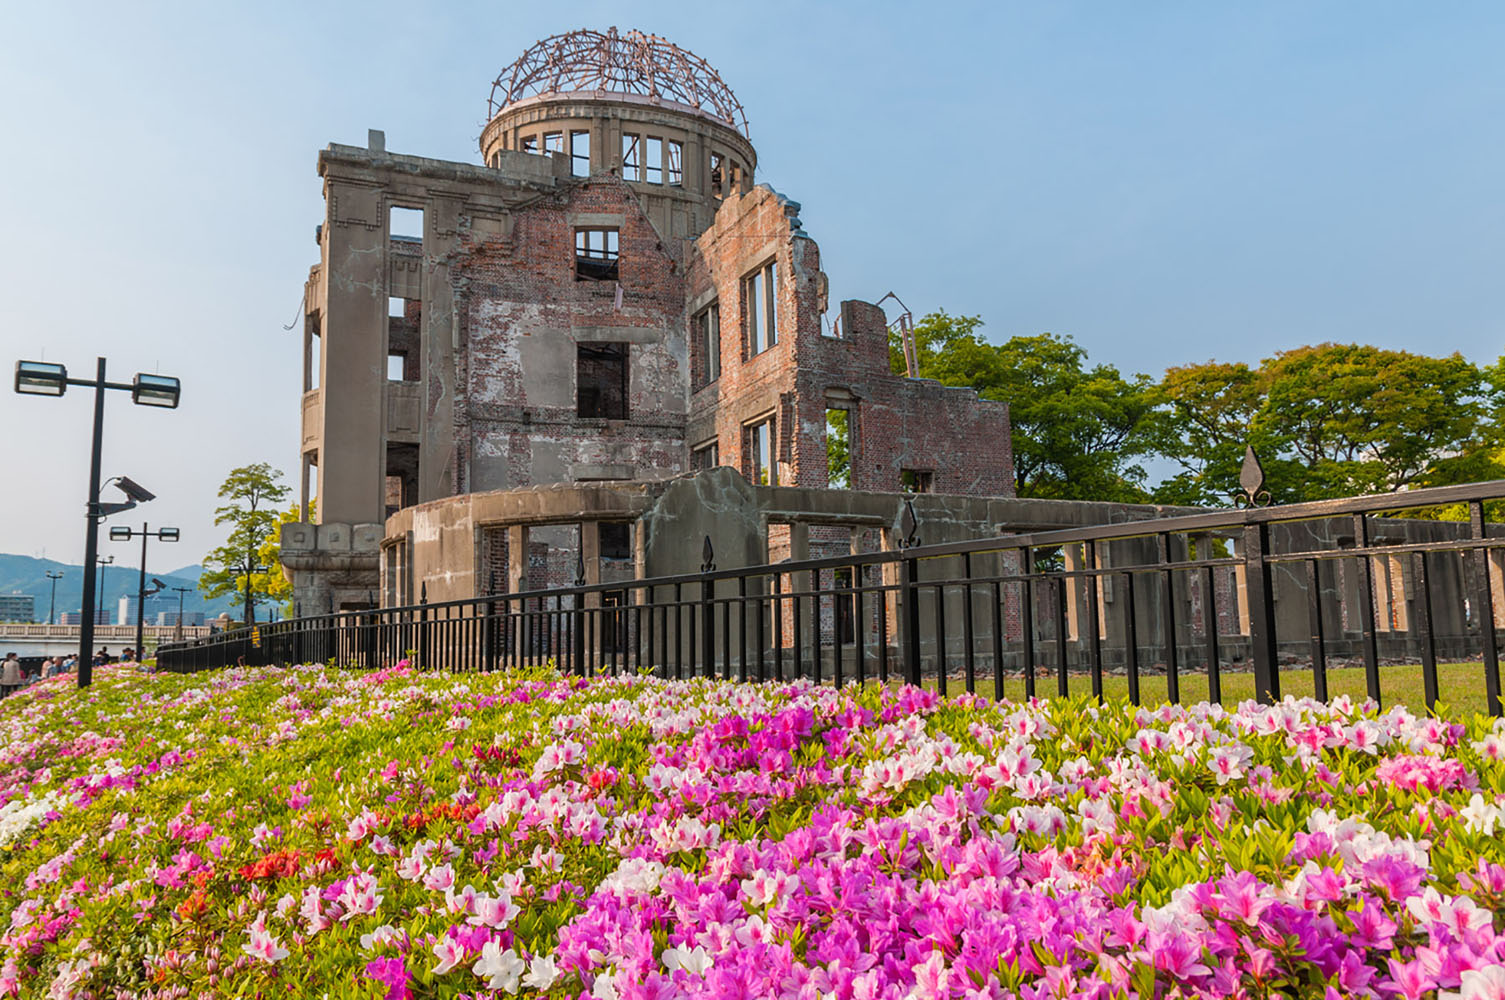 The Hiroshima Peace Memorial with flowers in the foreground